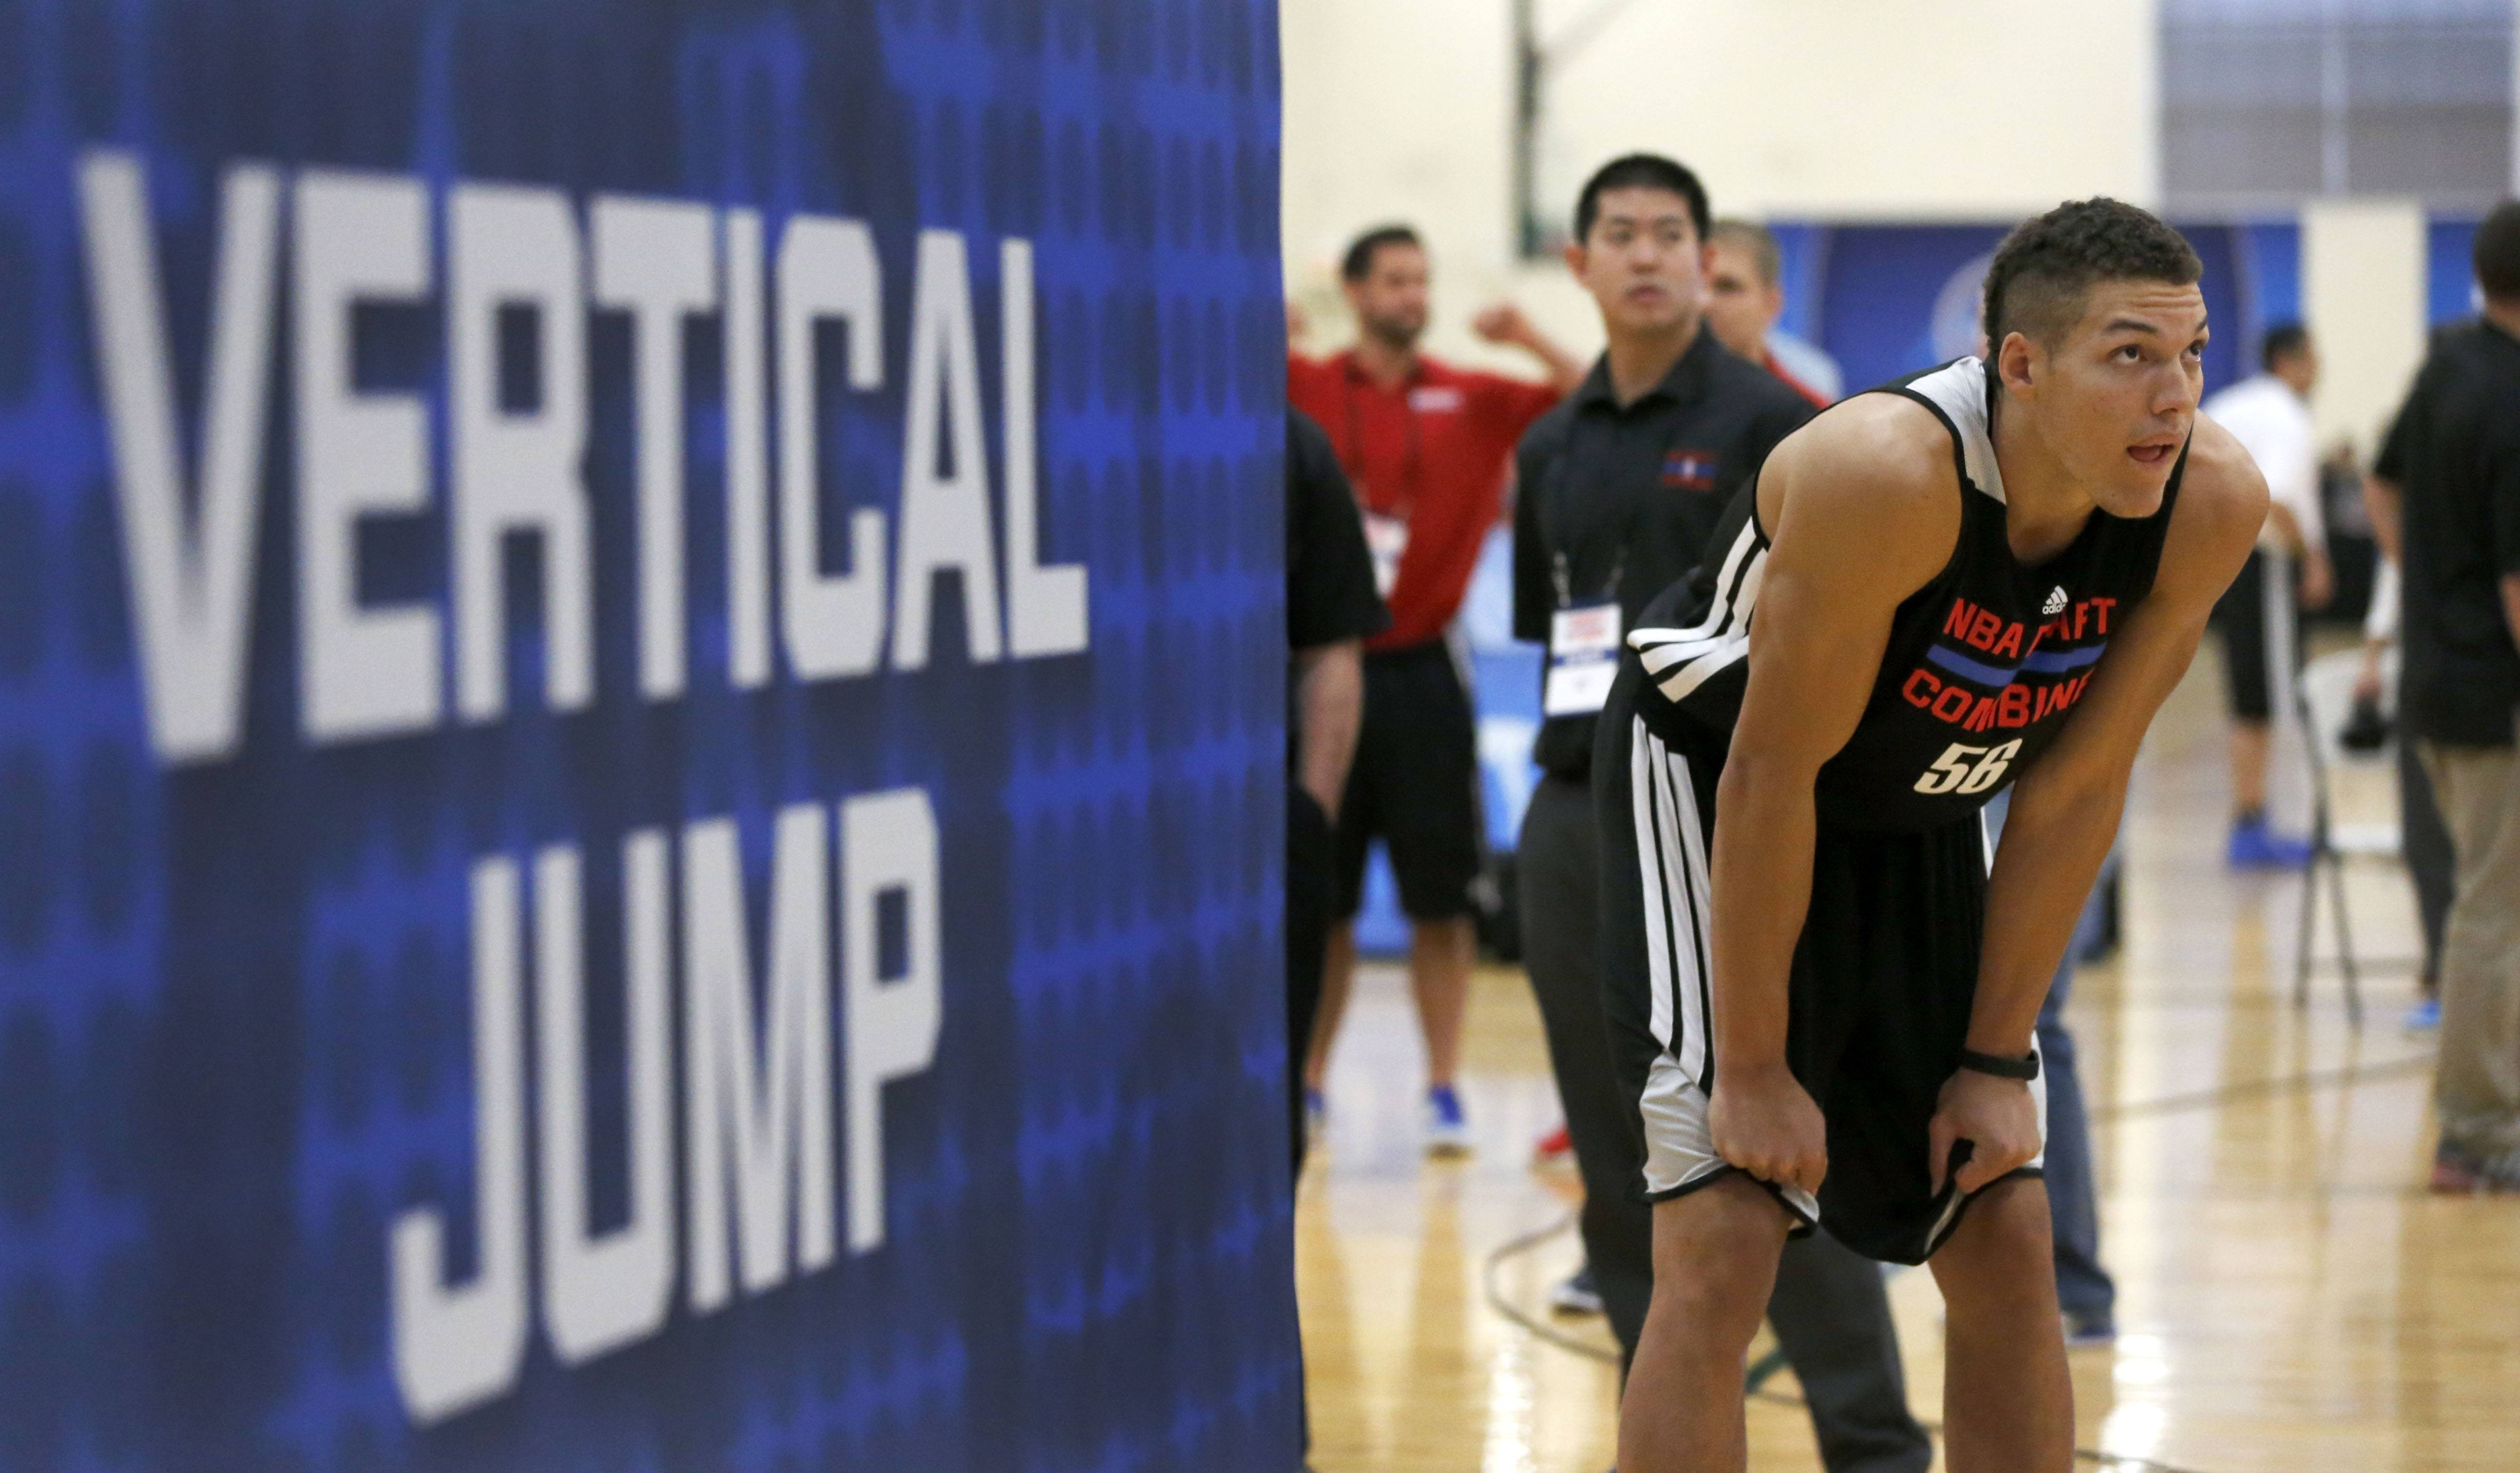 Aaron Gordon, from Arizona, waits to participate in the running vertical jump at the 2014 NBA basketball draft combine Friday, May 16, 2014, in Chicago.